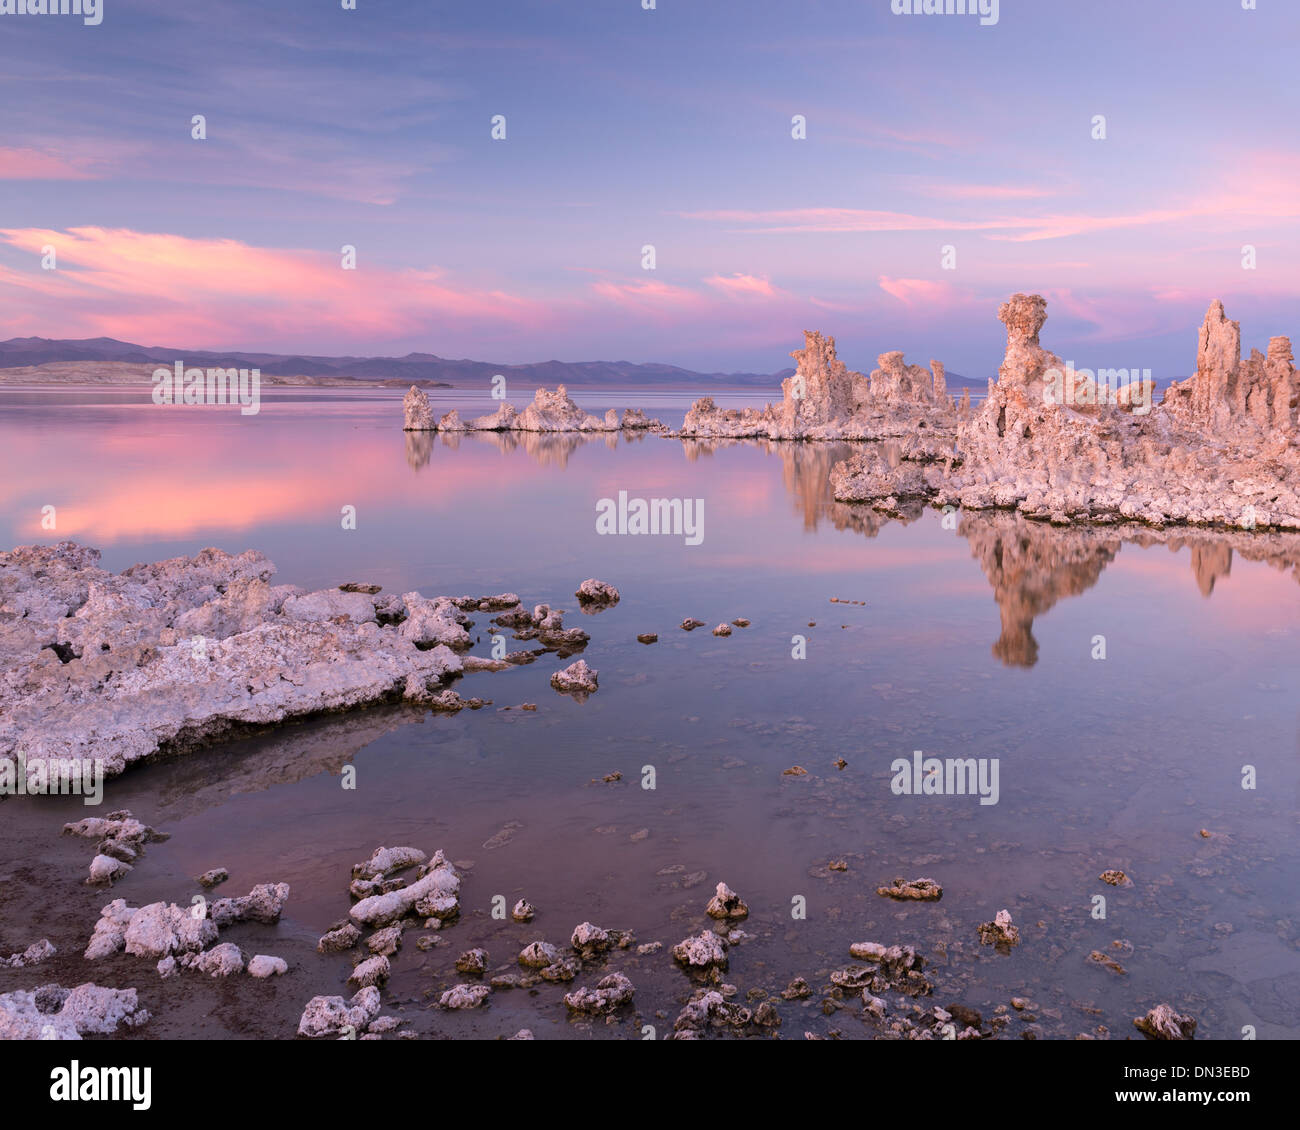 Sunset over a tranquil Mono Lake, California, USA. Autumn (October) 2013. - Stock Image